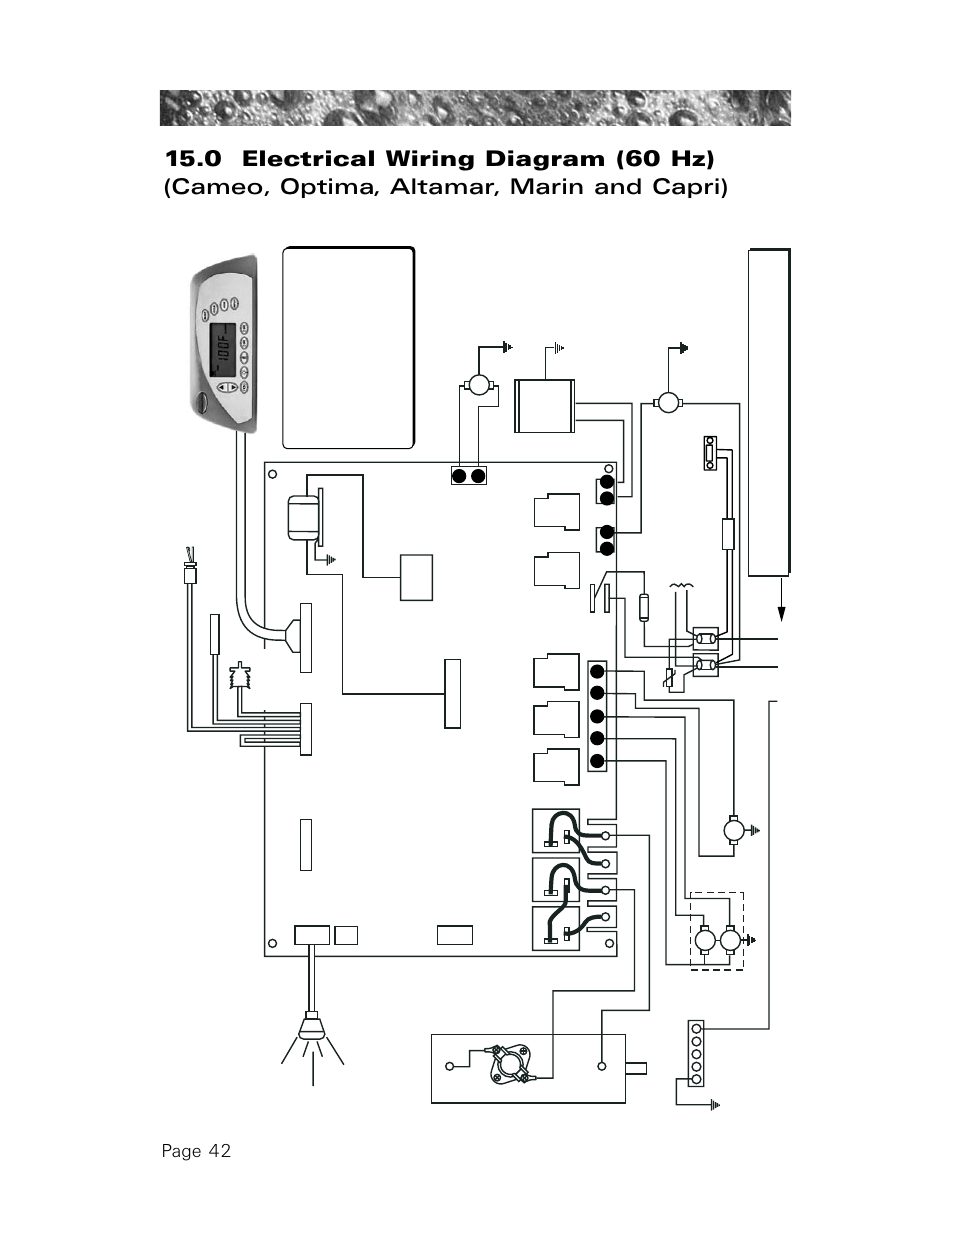 0 Electrical Wiring Diagram  60 Hz   Page 42